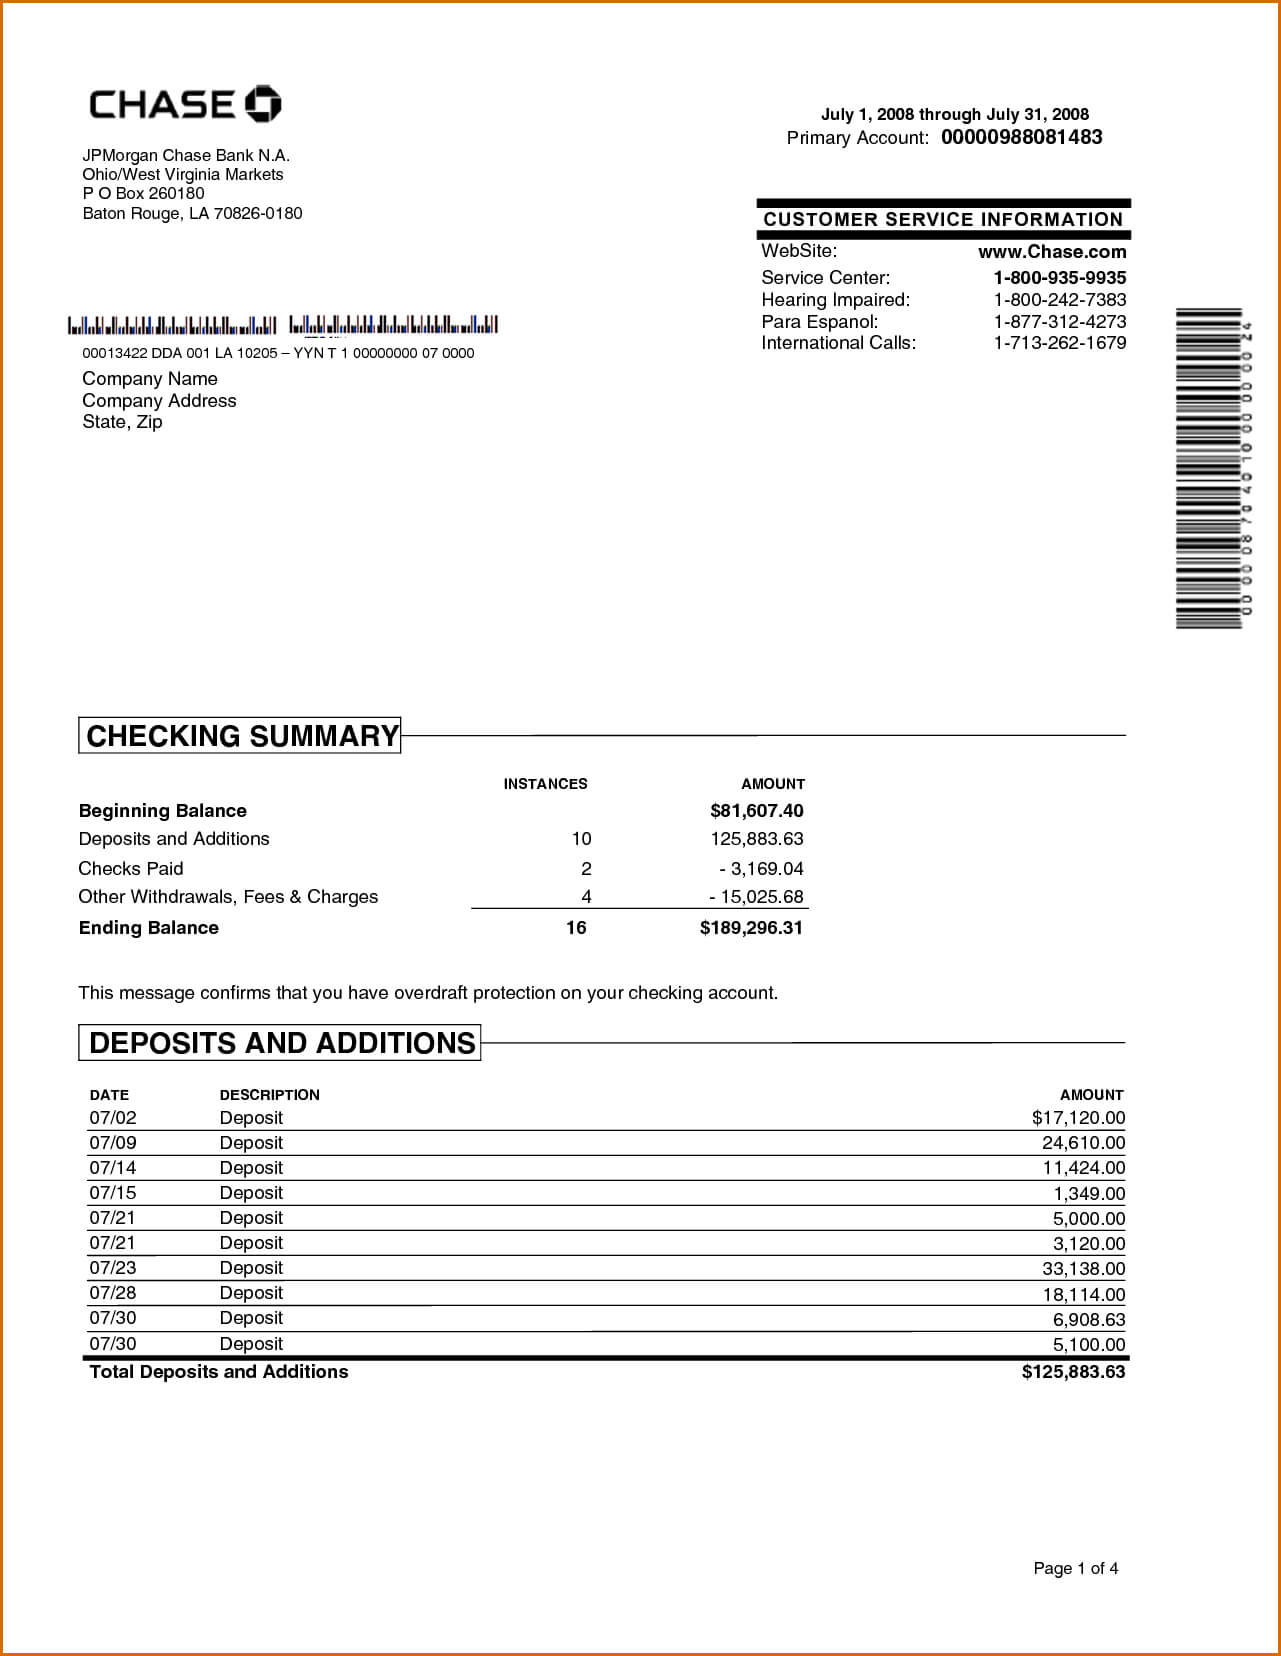 Chase Bank Statement Online Template | Best Template with regard to Credit Card Statement Template